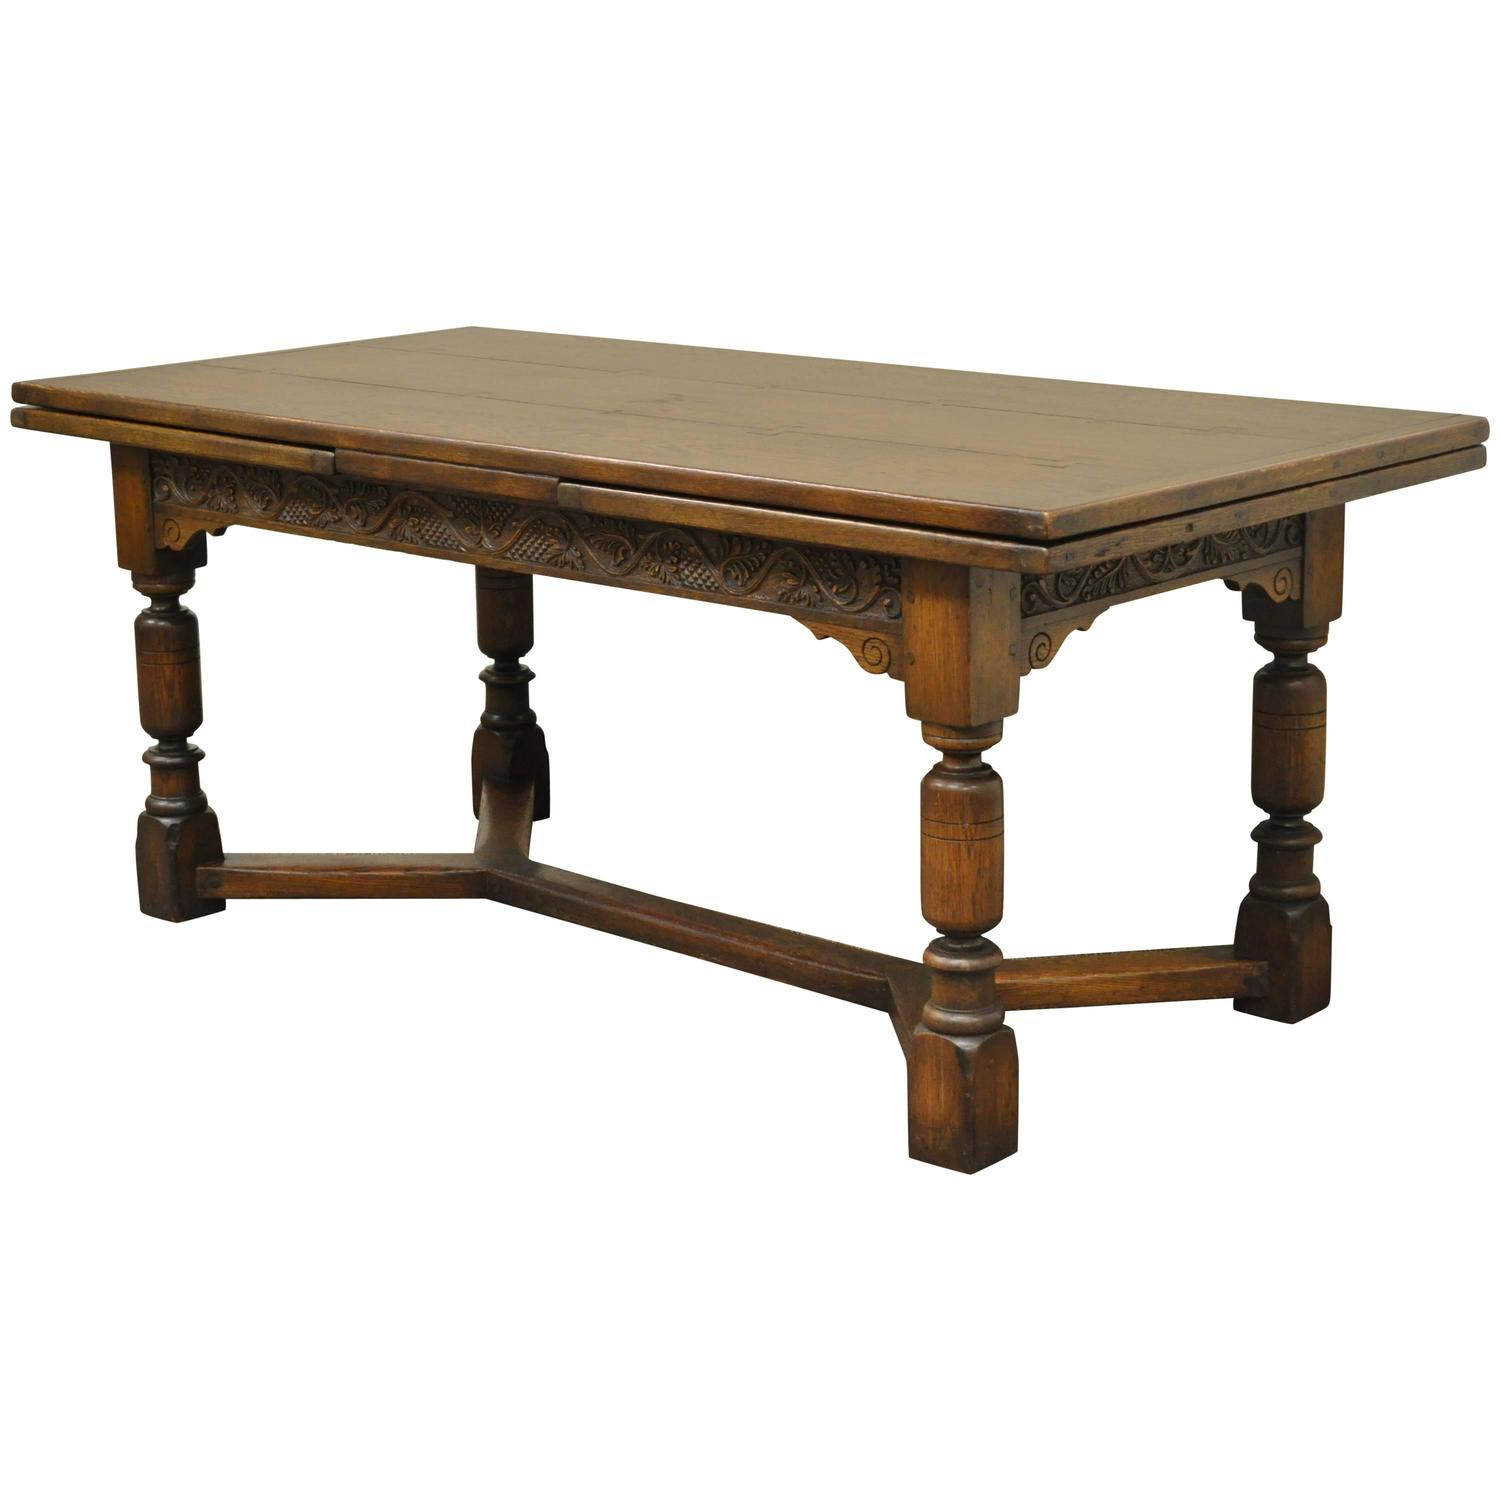 1930s Solid Carved Oak Jacobean Style Refectory Extension Plank Dining Table  at 1stdibs. 1930s Solid Carved Oak Jacobean Style Refectory Extension Plank